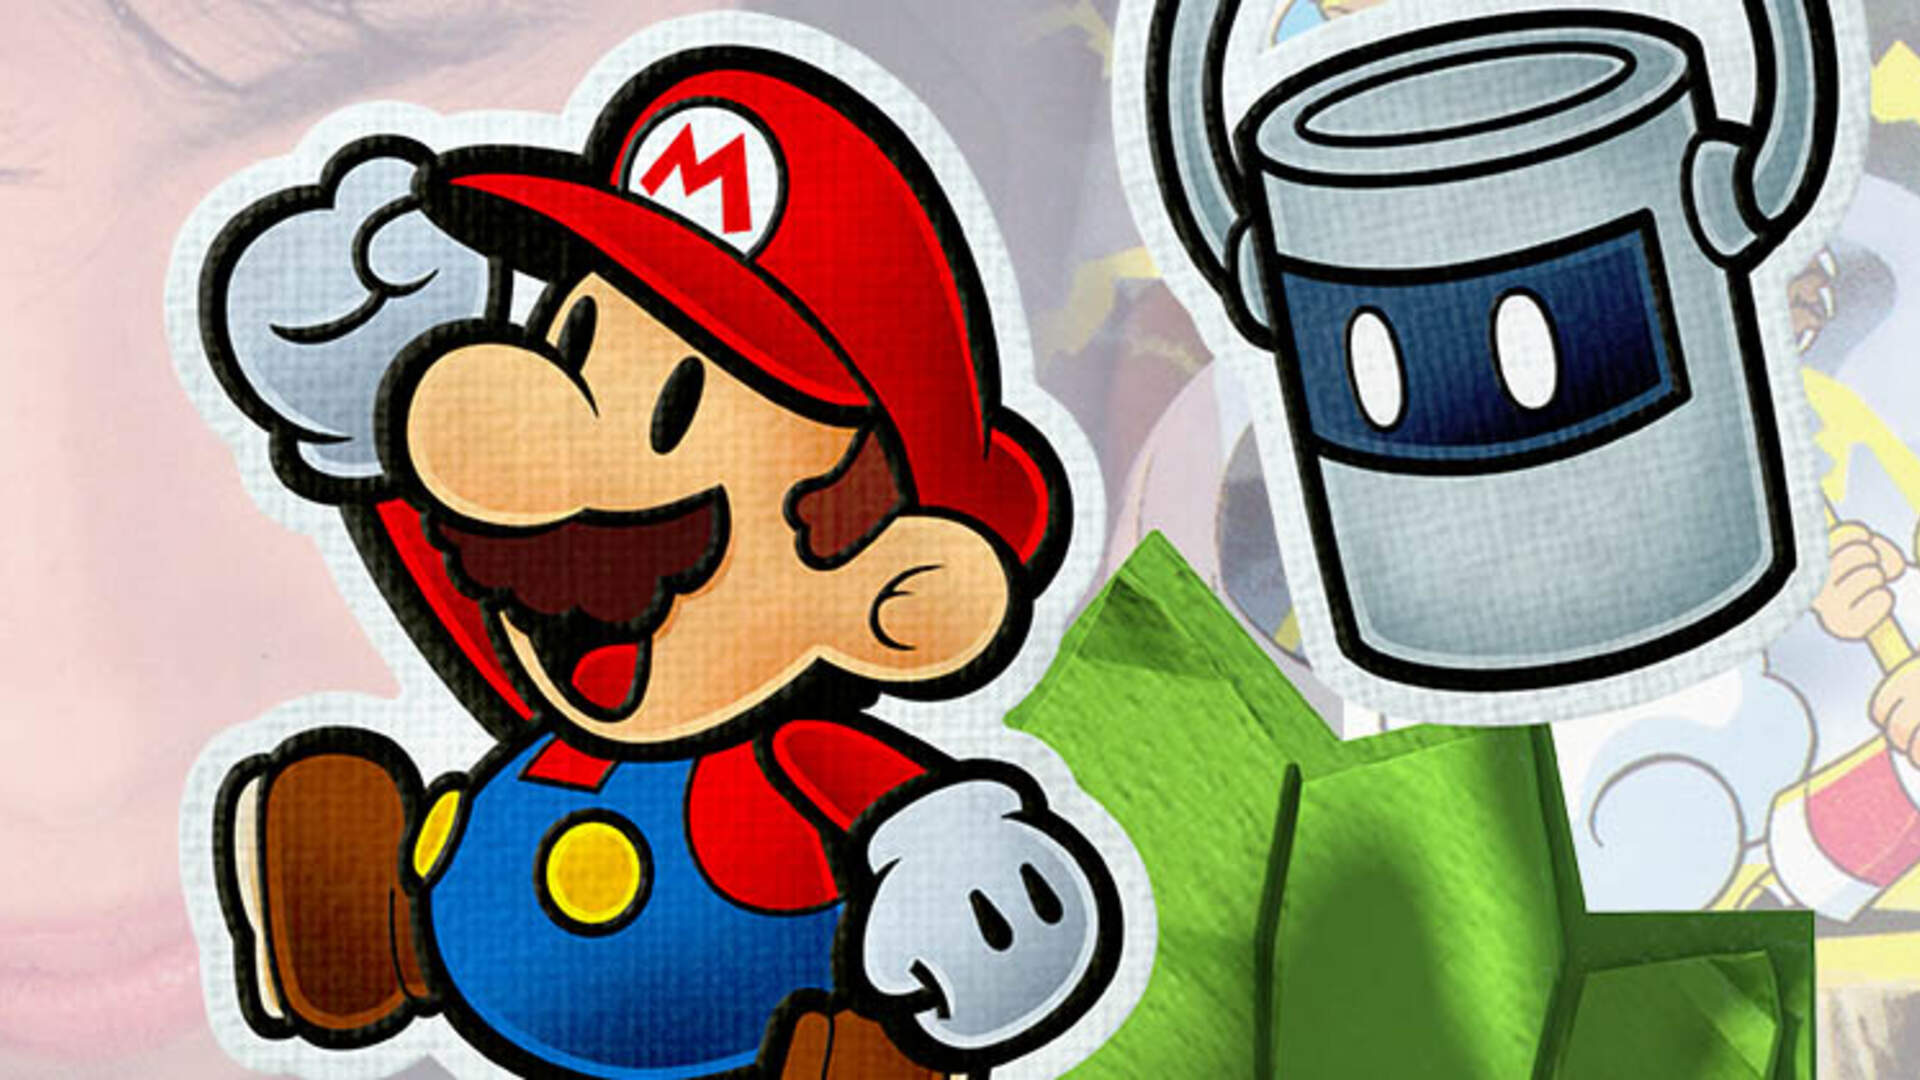 Paper Mario's Evolution from RPG to Adventure Game Draws a Line to a Forgotten Corner of Nintendo's Past